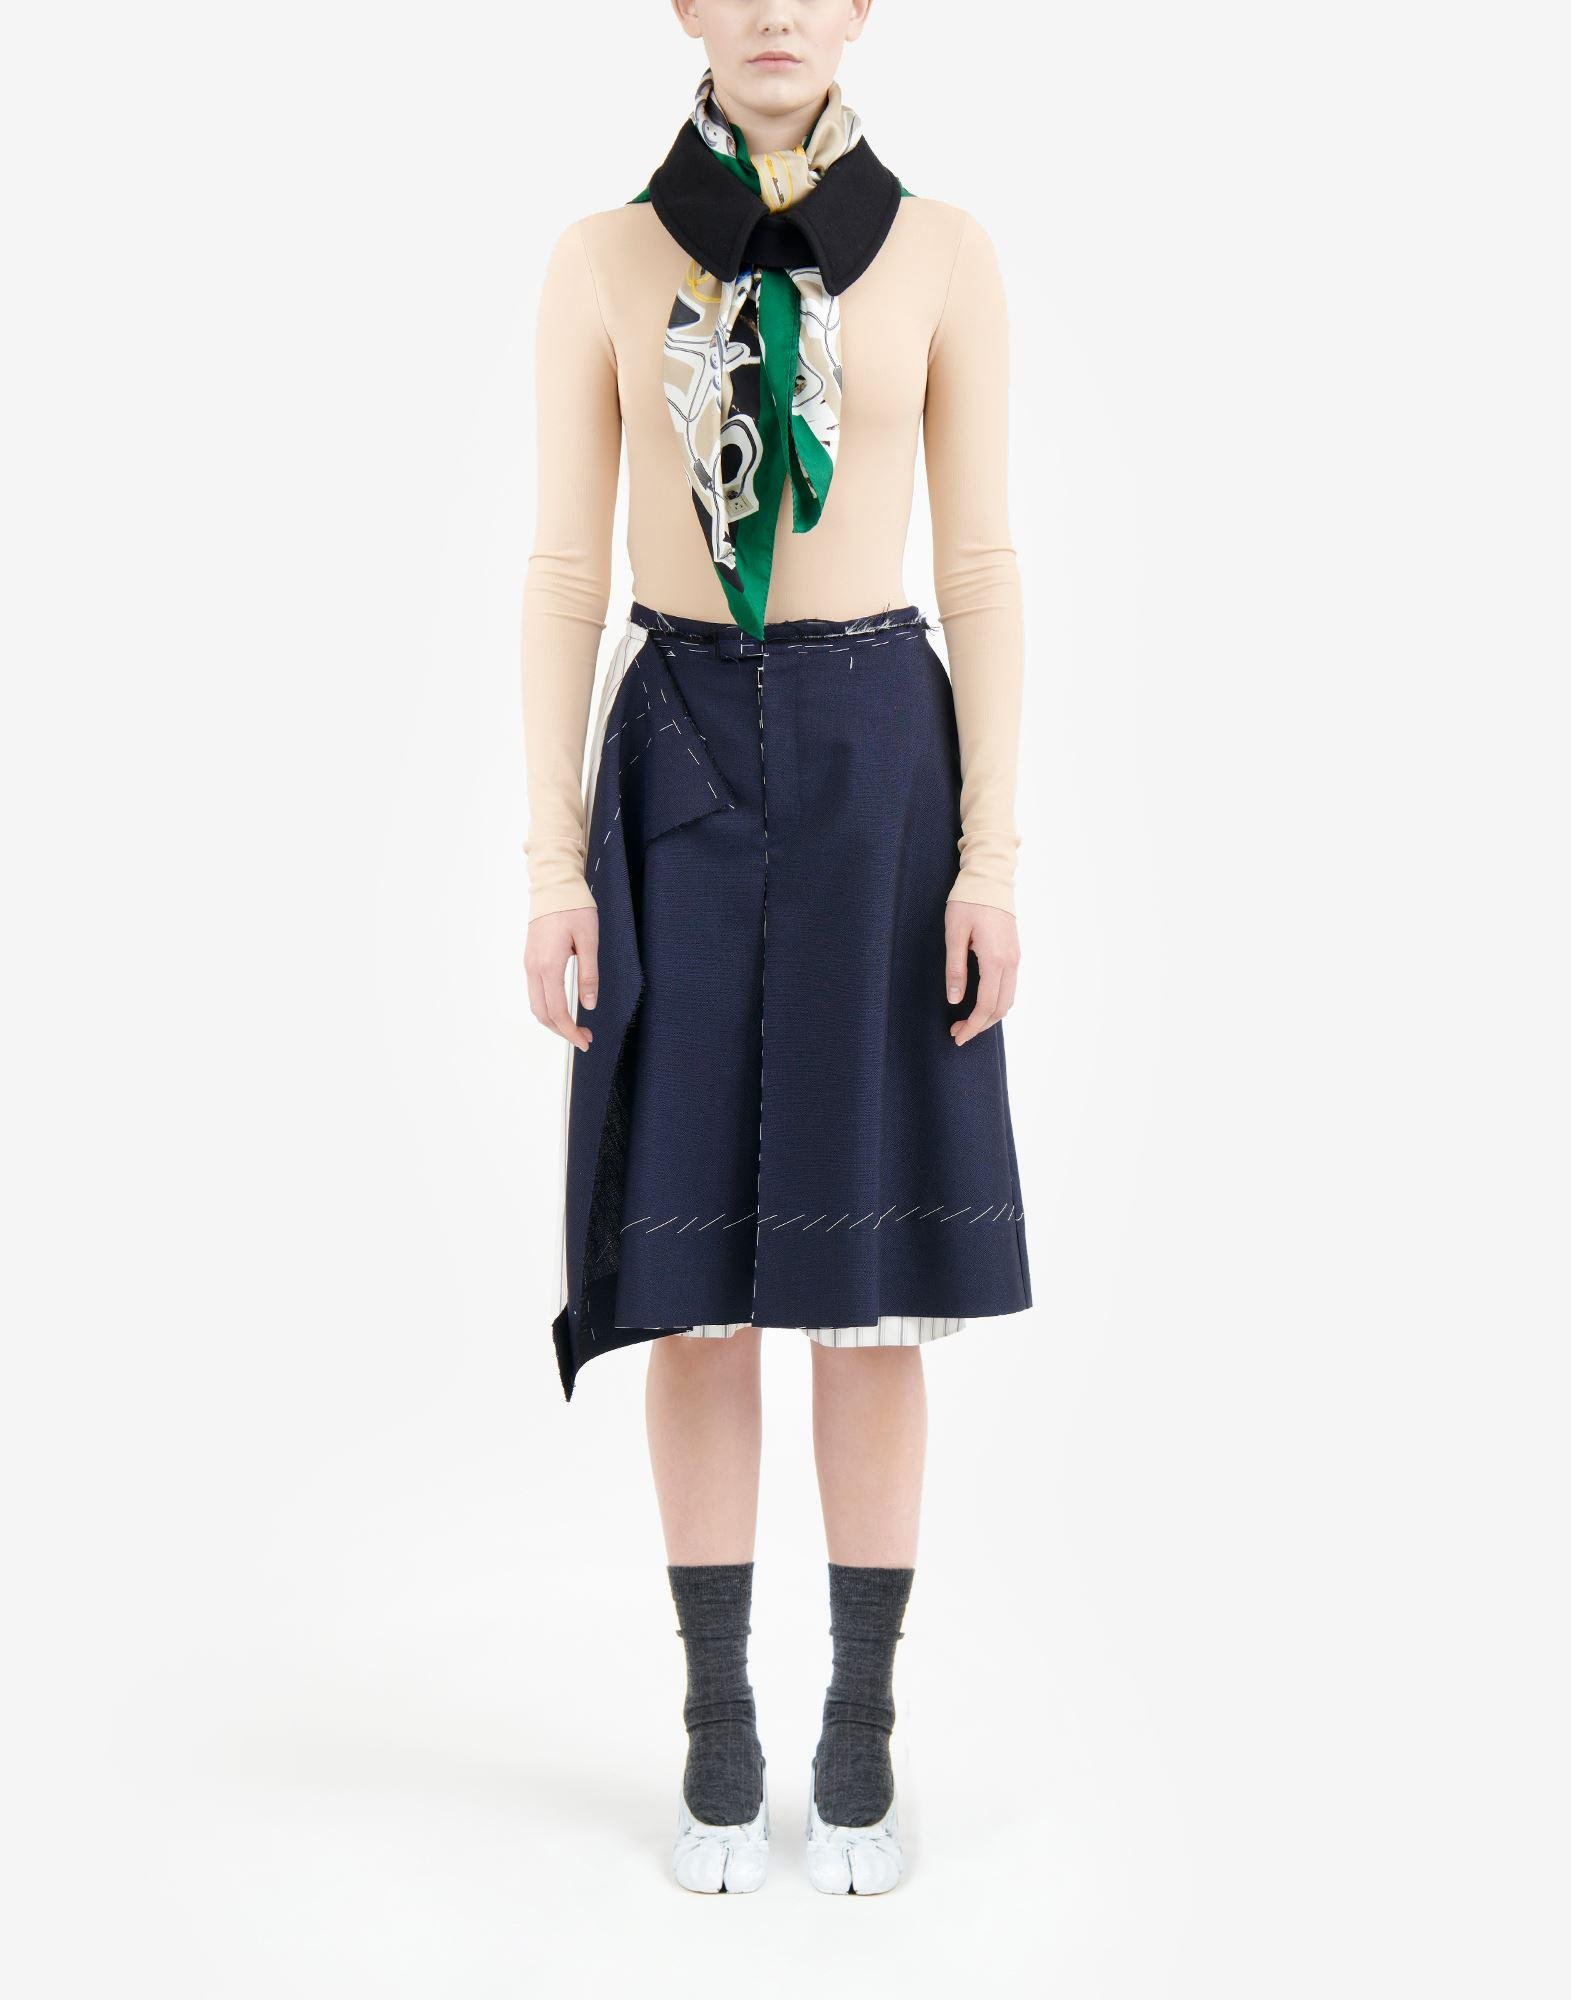 Anonymity of the lining skirt